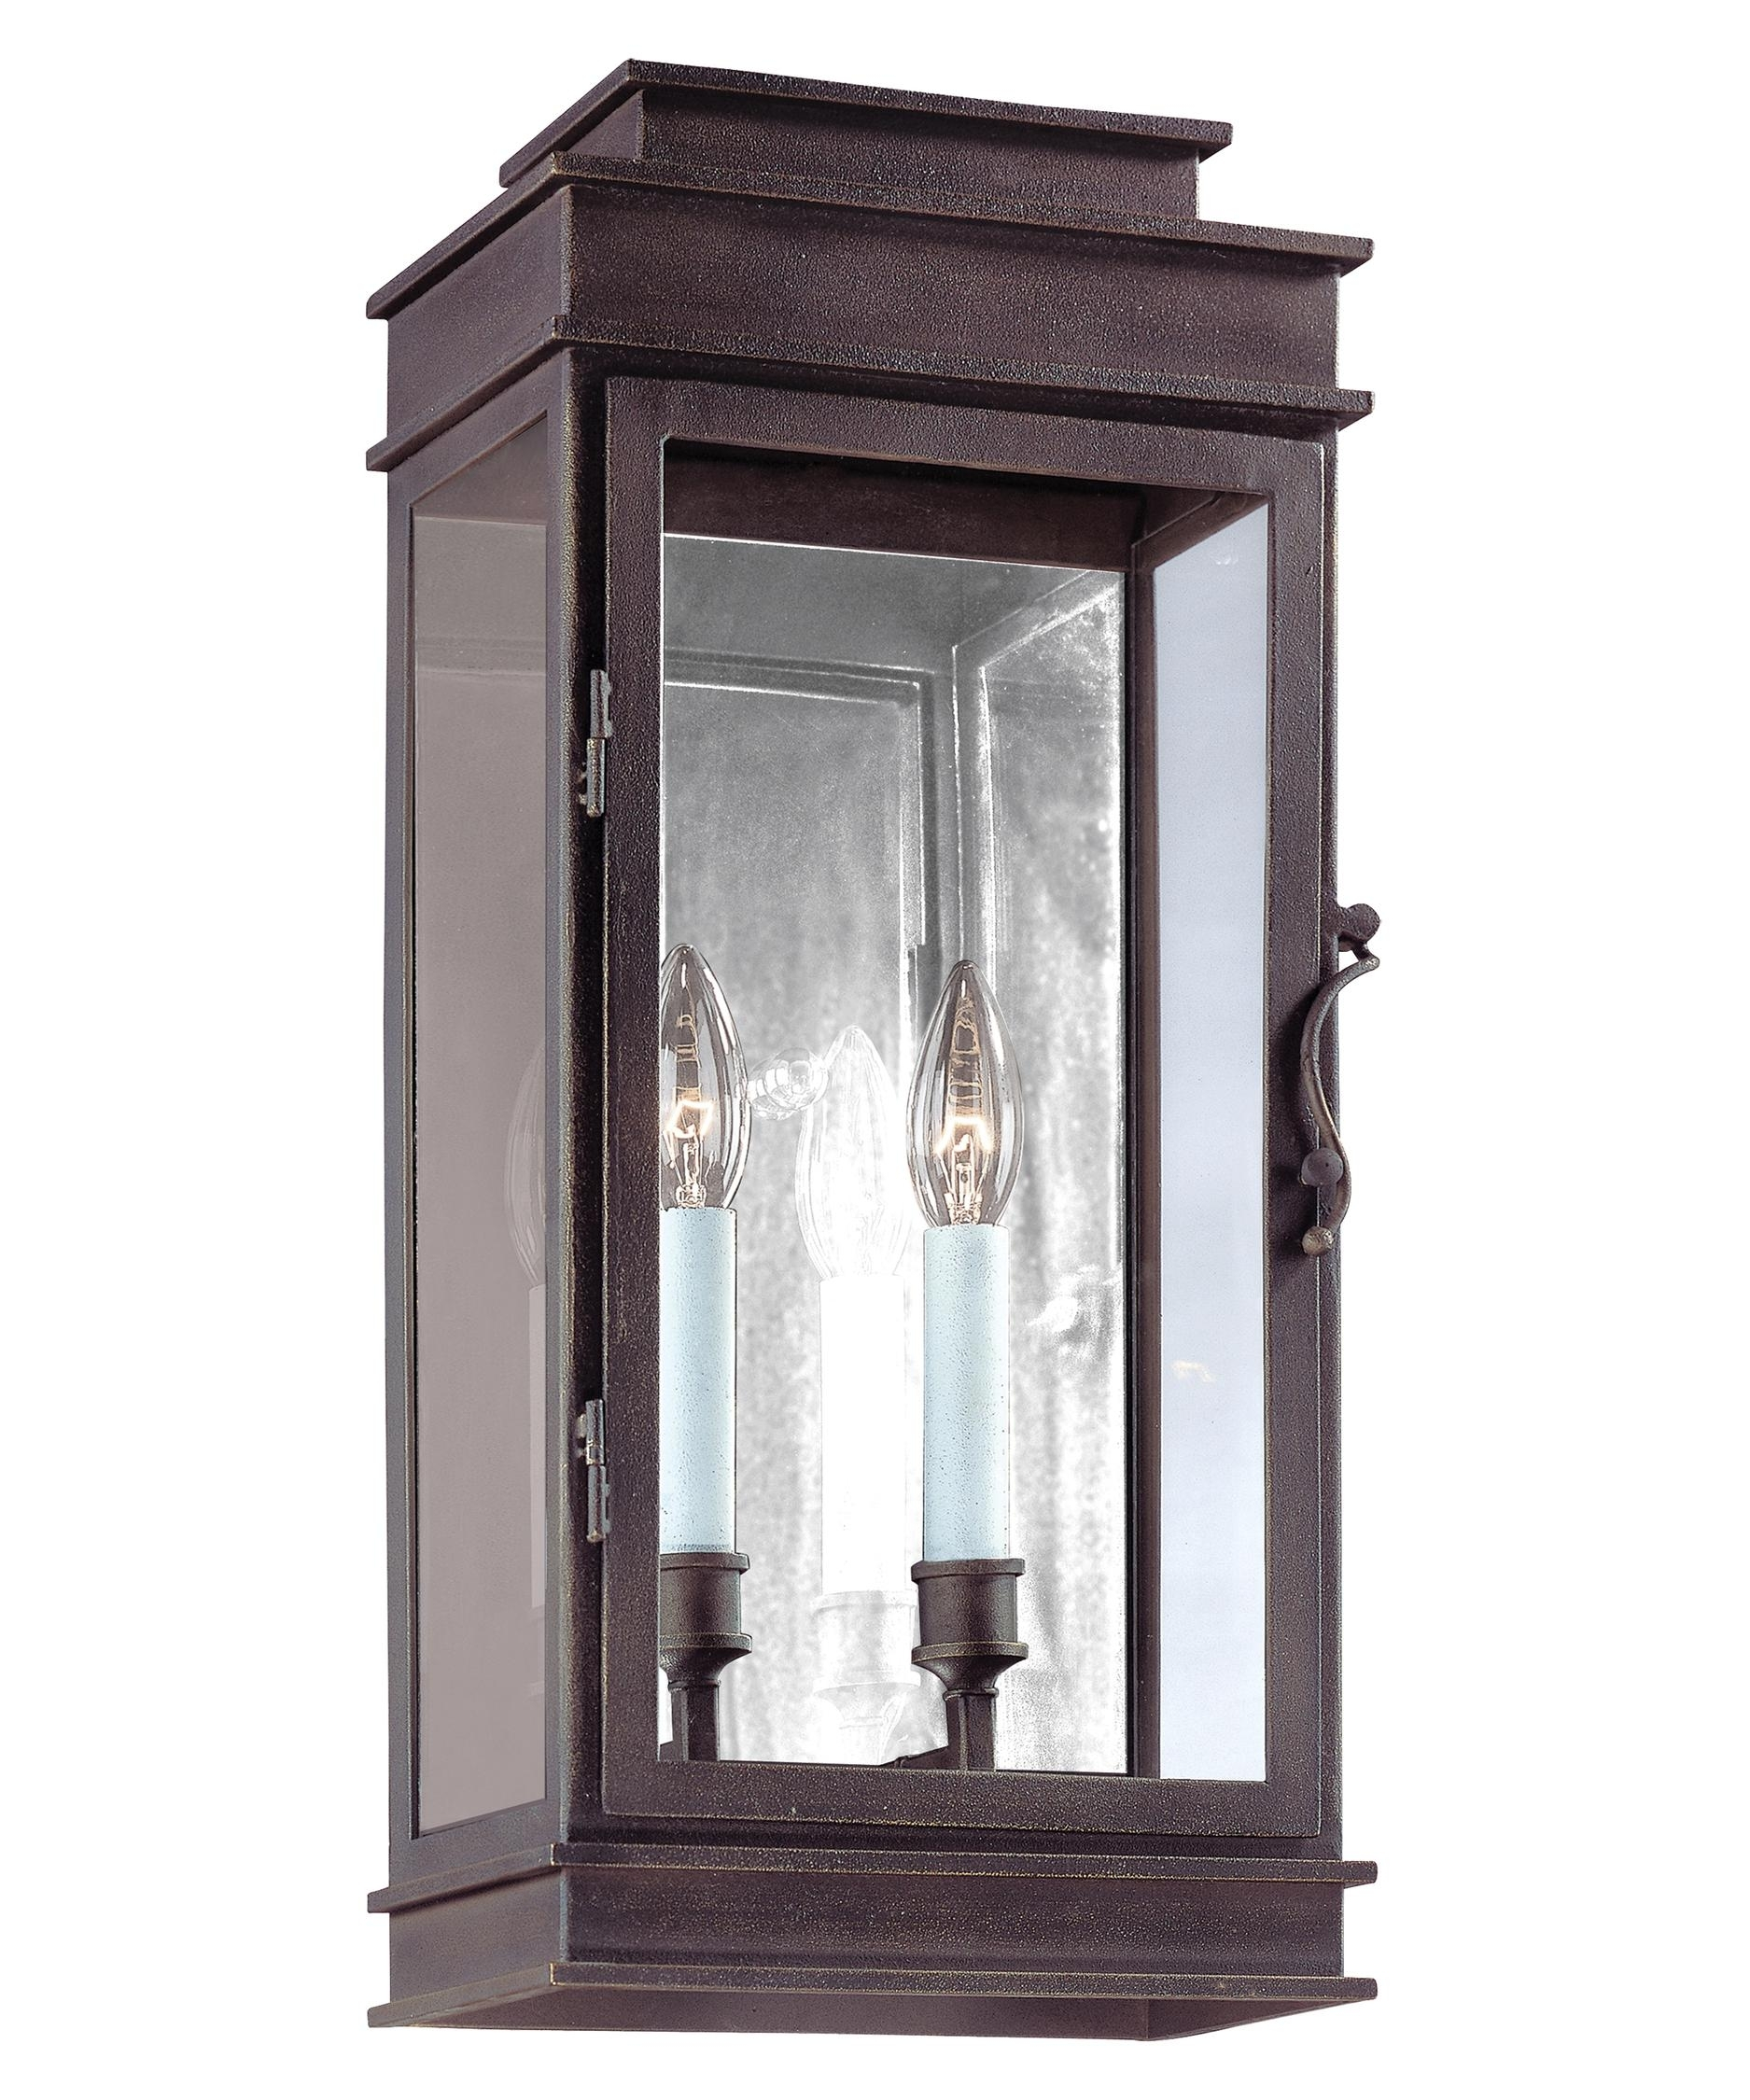 Reproduction Vintage Lighting Industrial Style Victorian Street throughout Antique Outdoor Lanterns (Image 16 of 20)